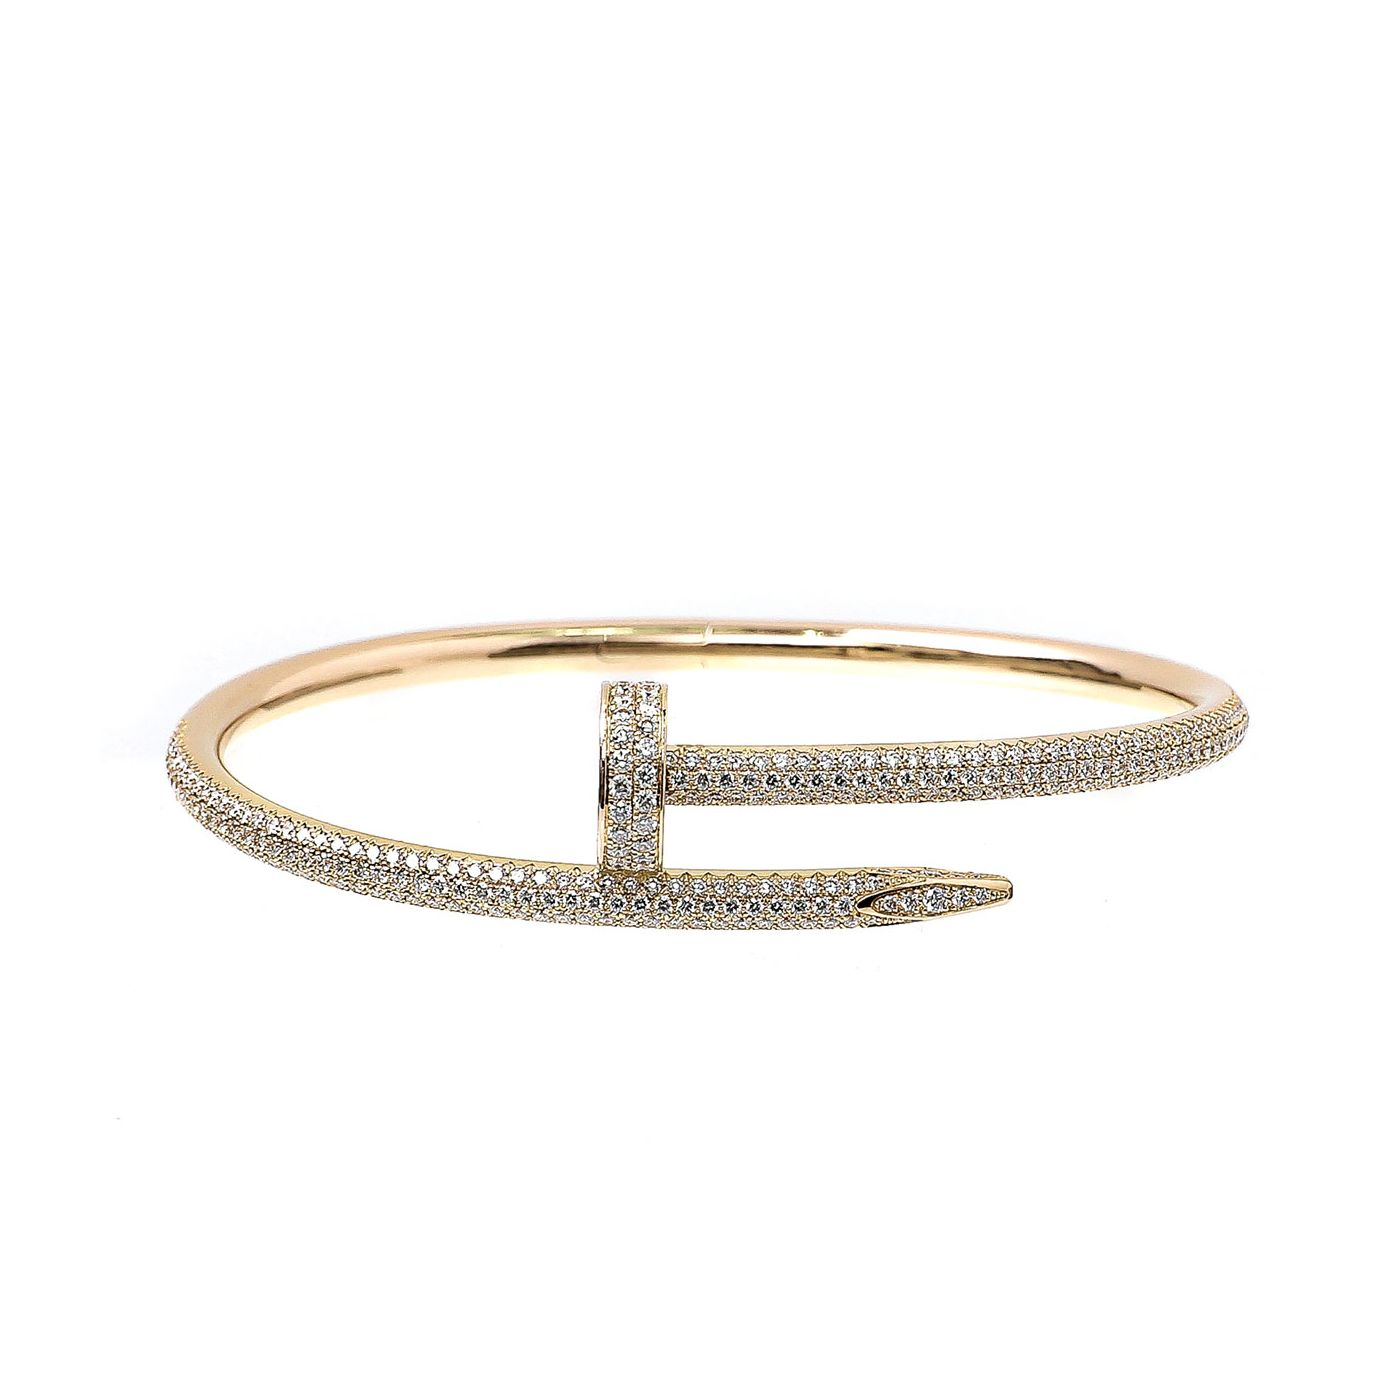 Cartier 18K Rose Gold Diamonds Juste Un Clou Bracelet 17